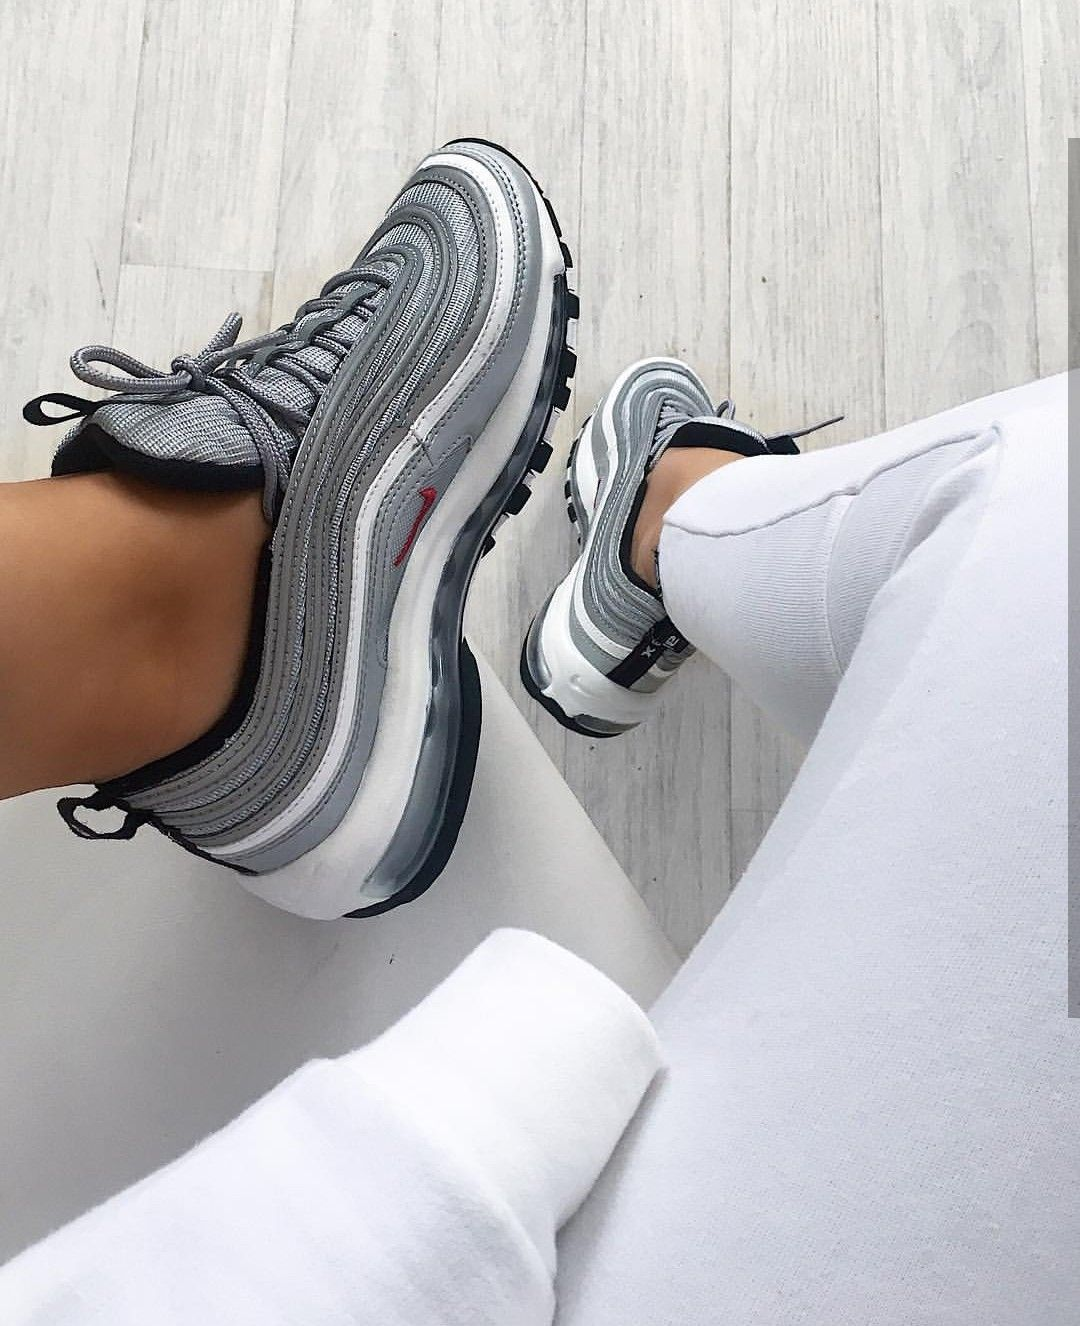 newest 77e6a 1935d Nike Air Max 97 in grau white red    Foto  nawellleee  Instagram